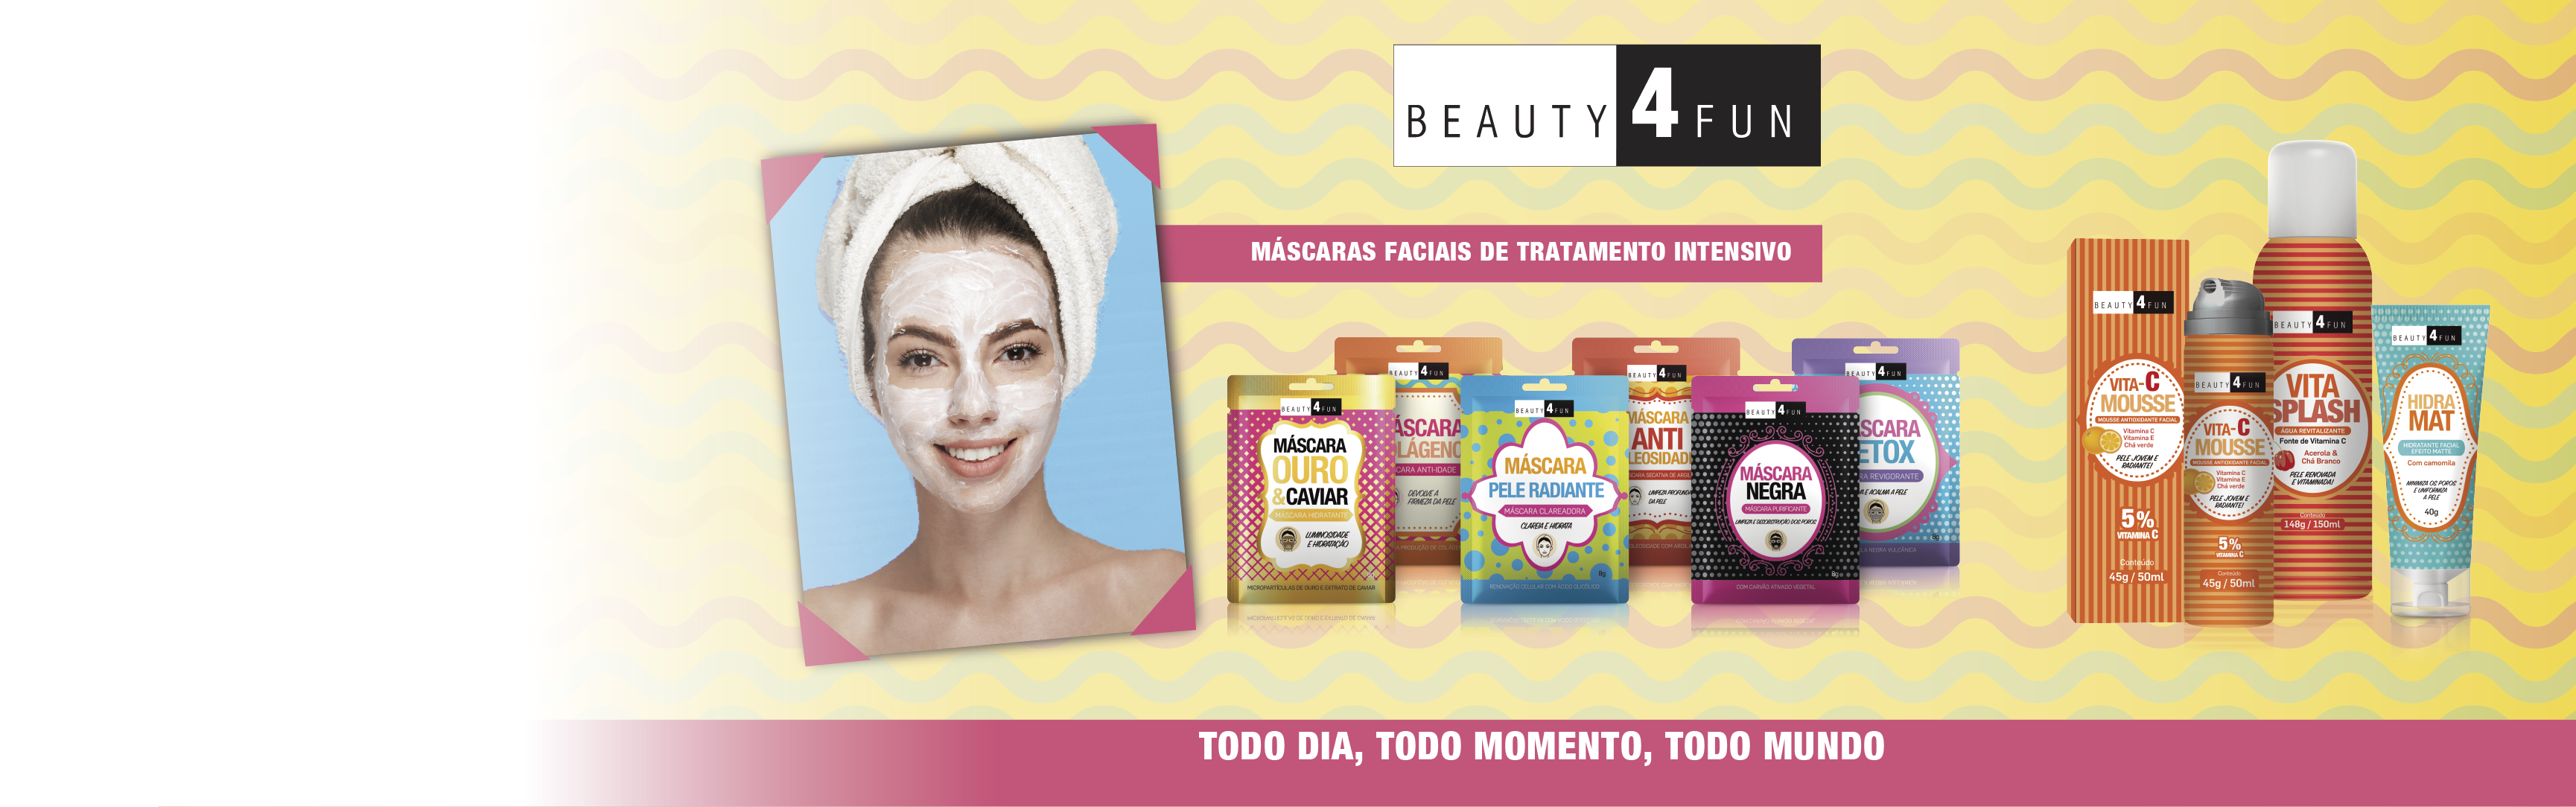 Máscara Facial Beauty 4 Fun